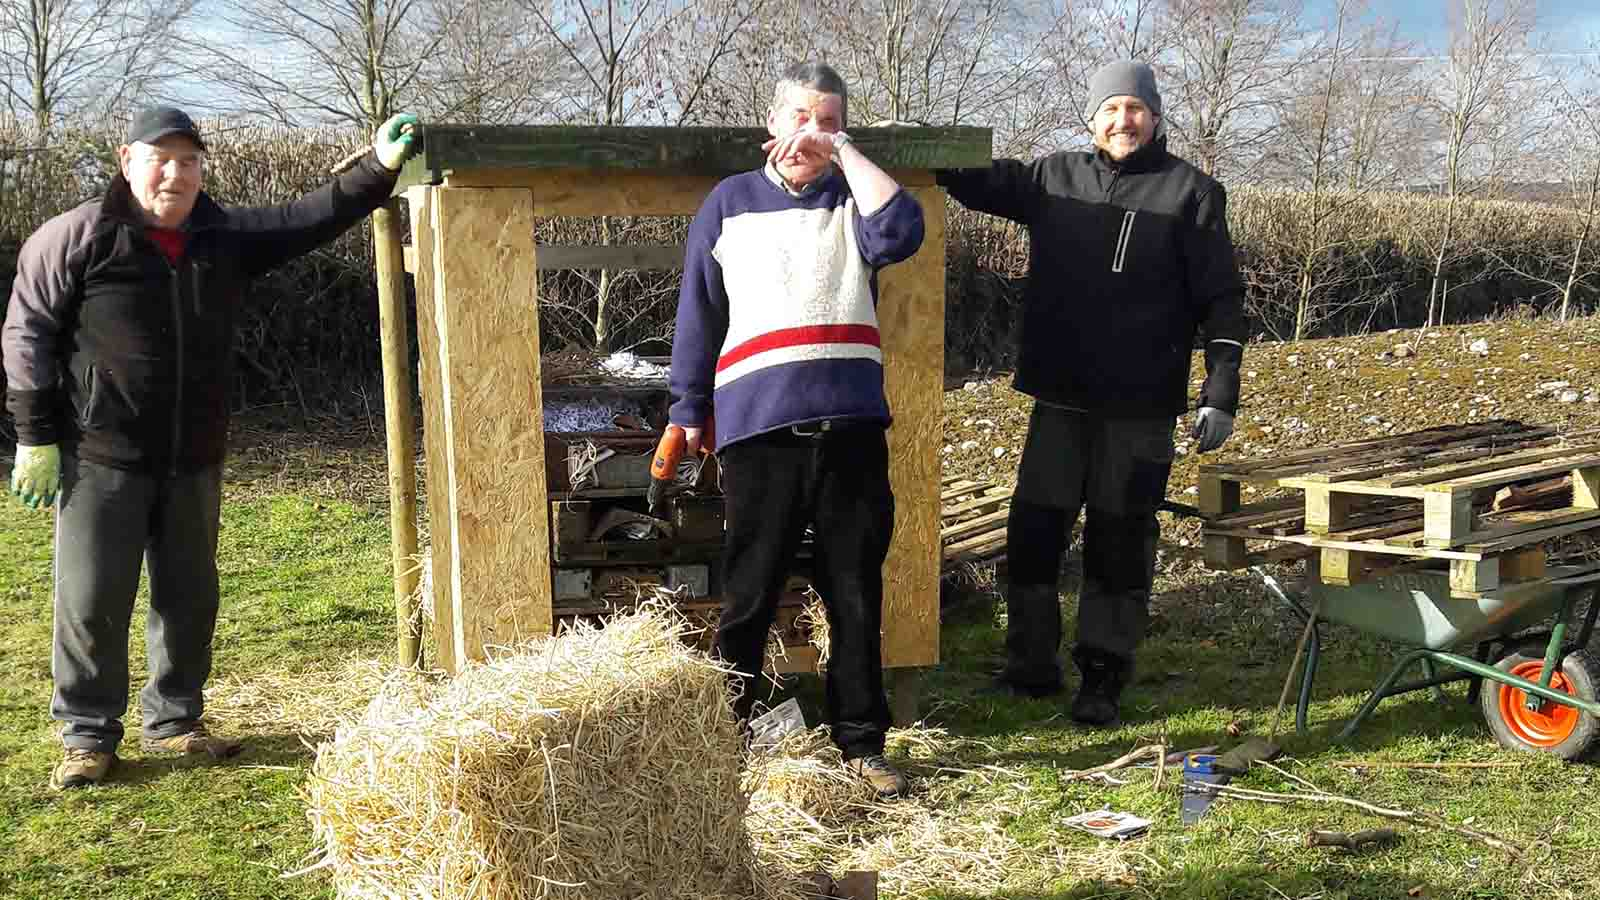 Men's Shed: Promoting Wellbeing